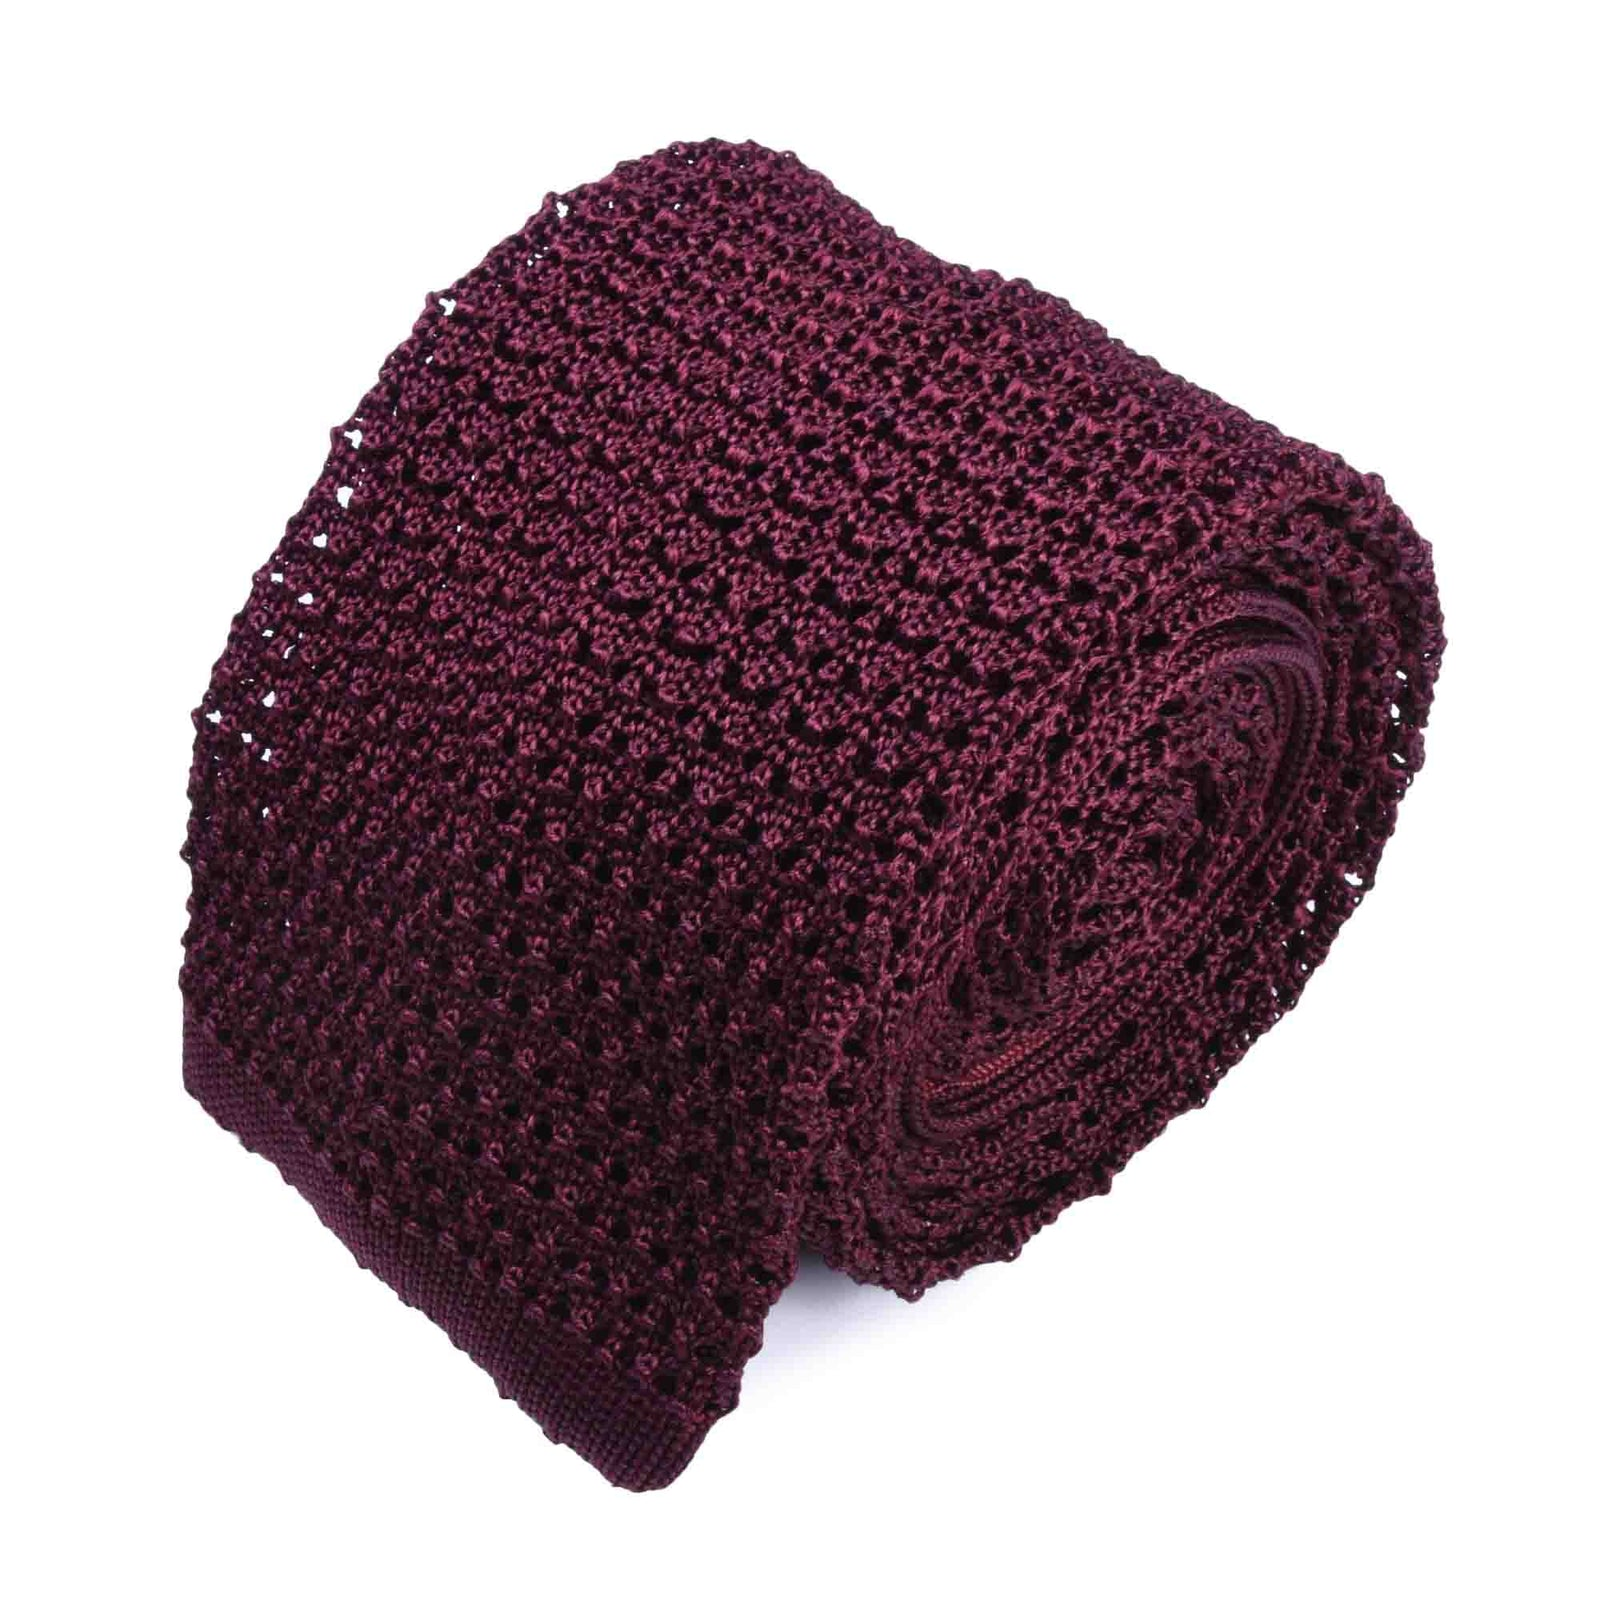 KNITTED CROCHET OXBLOOD TIE